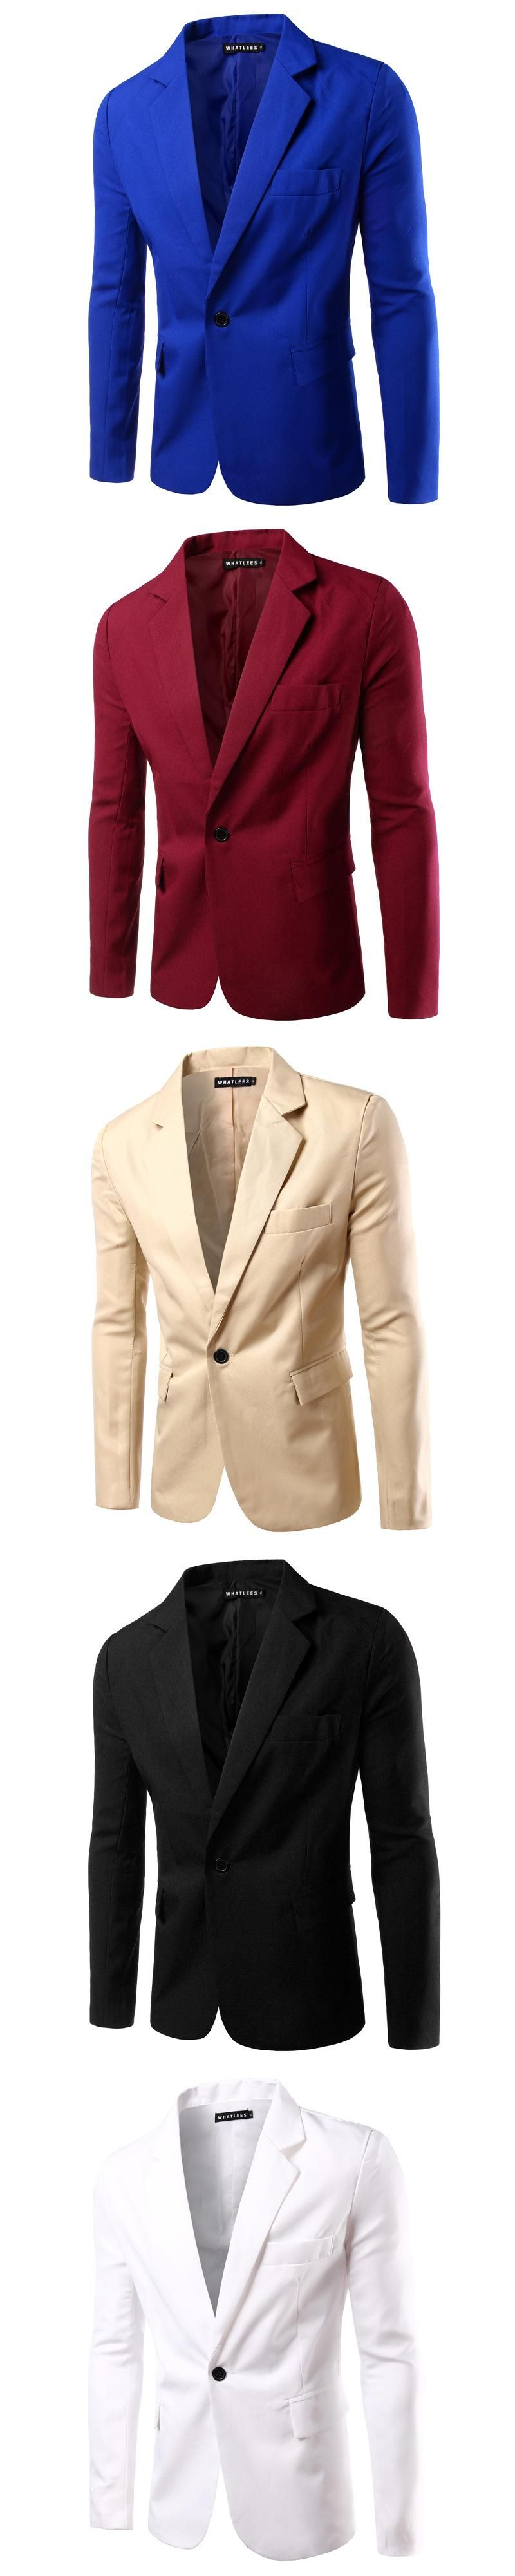 Mens One Button Solid Color Suit Jackets New Fashion Business